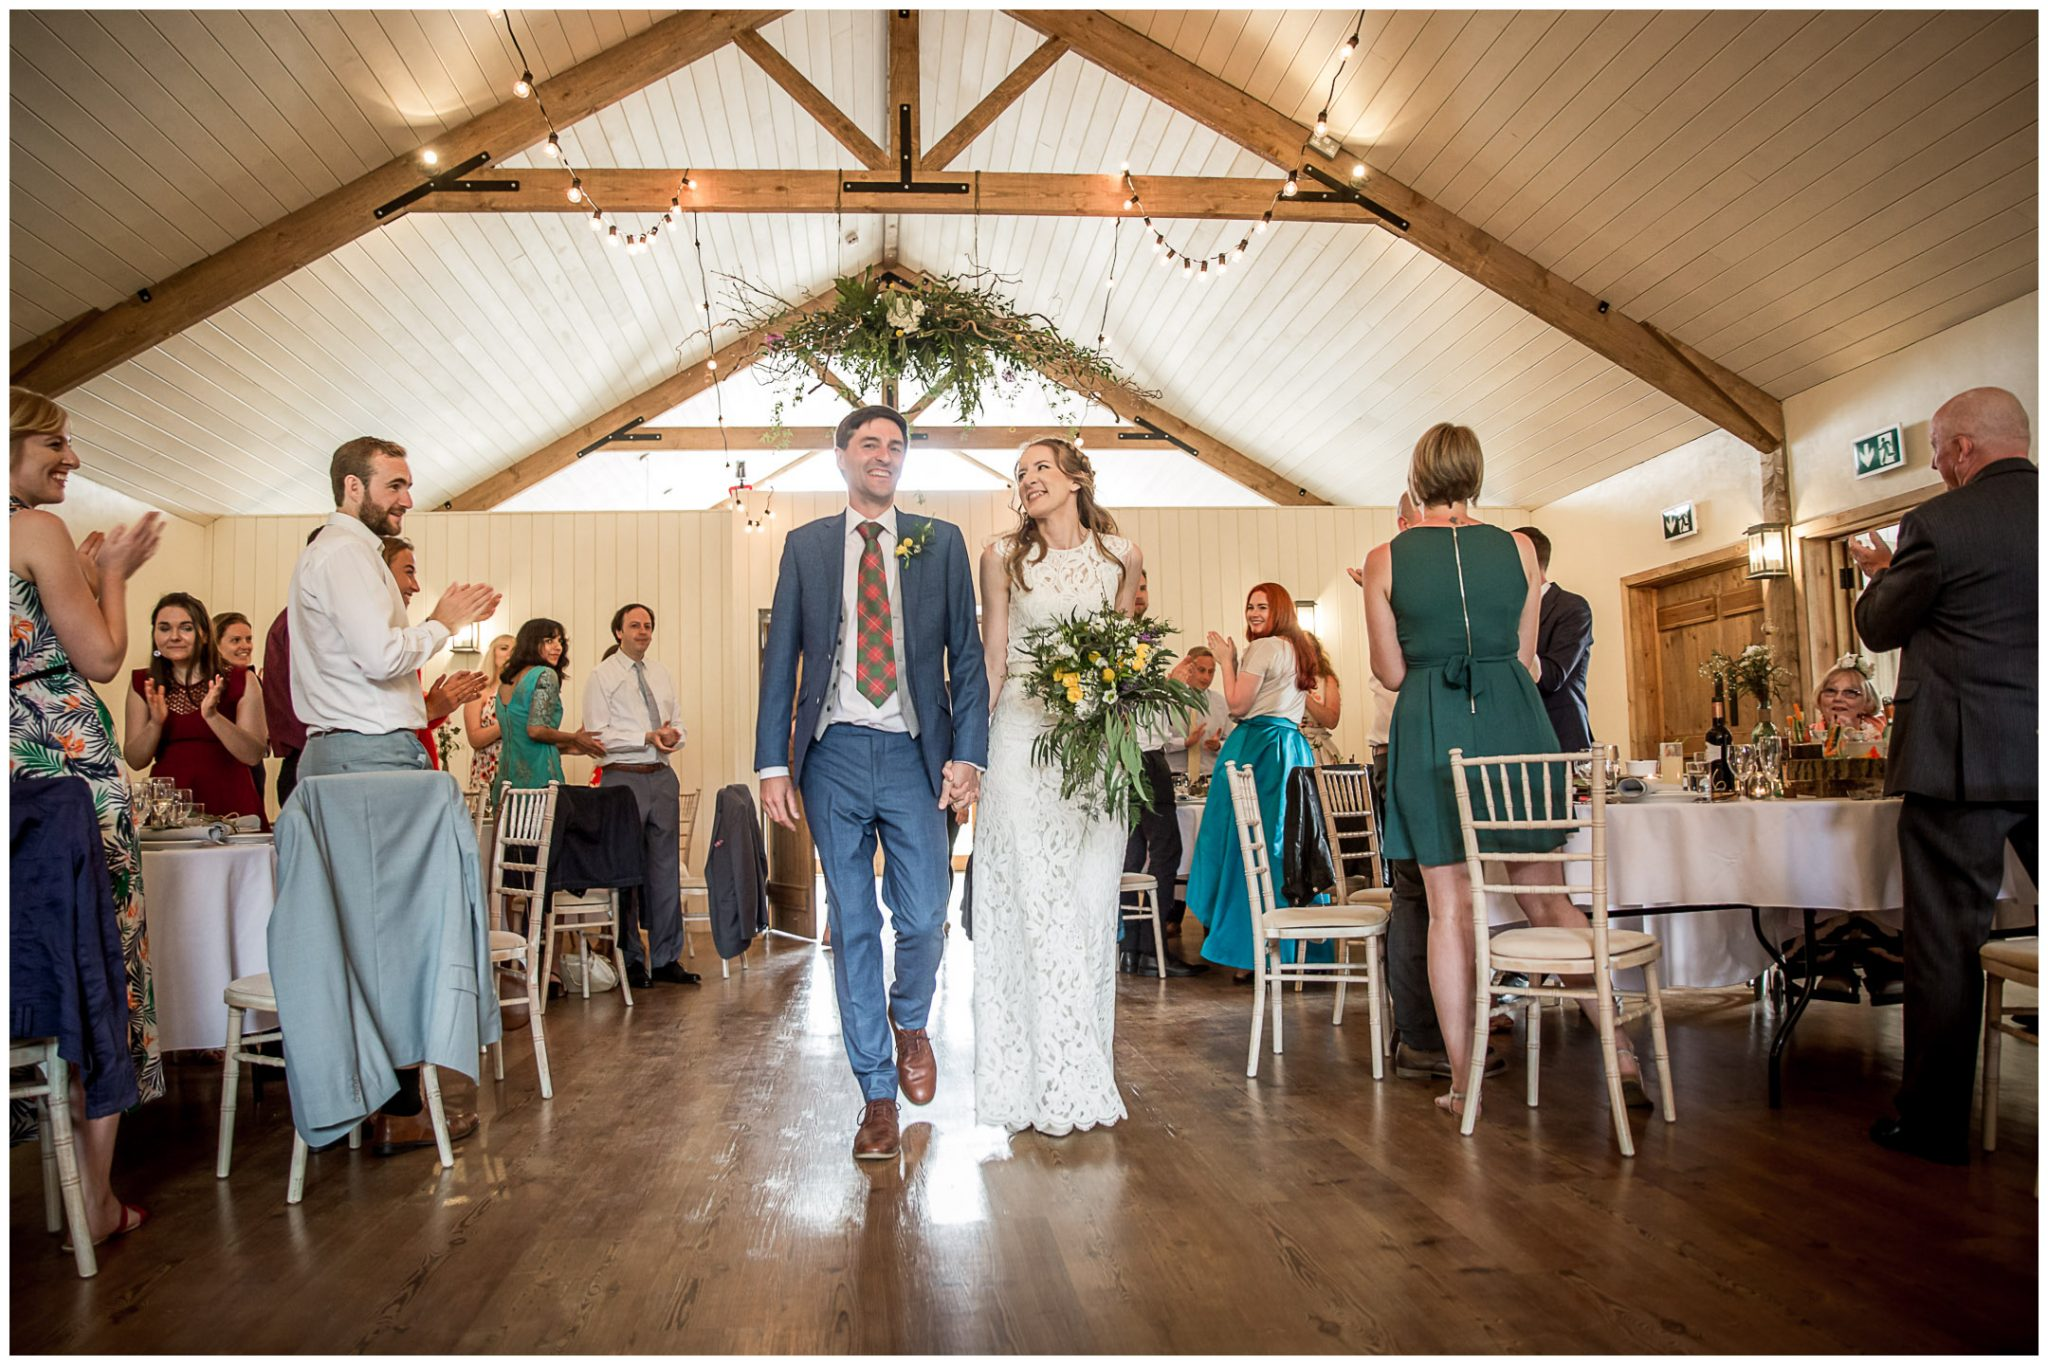 Bride and groom enter the barn reception space for their wedding breakfast